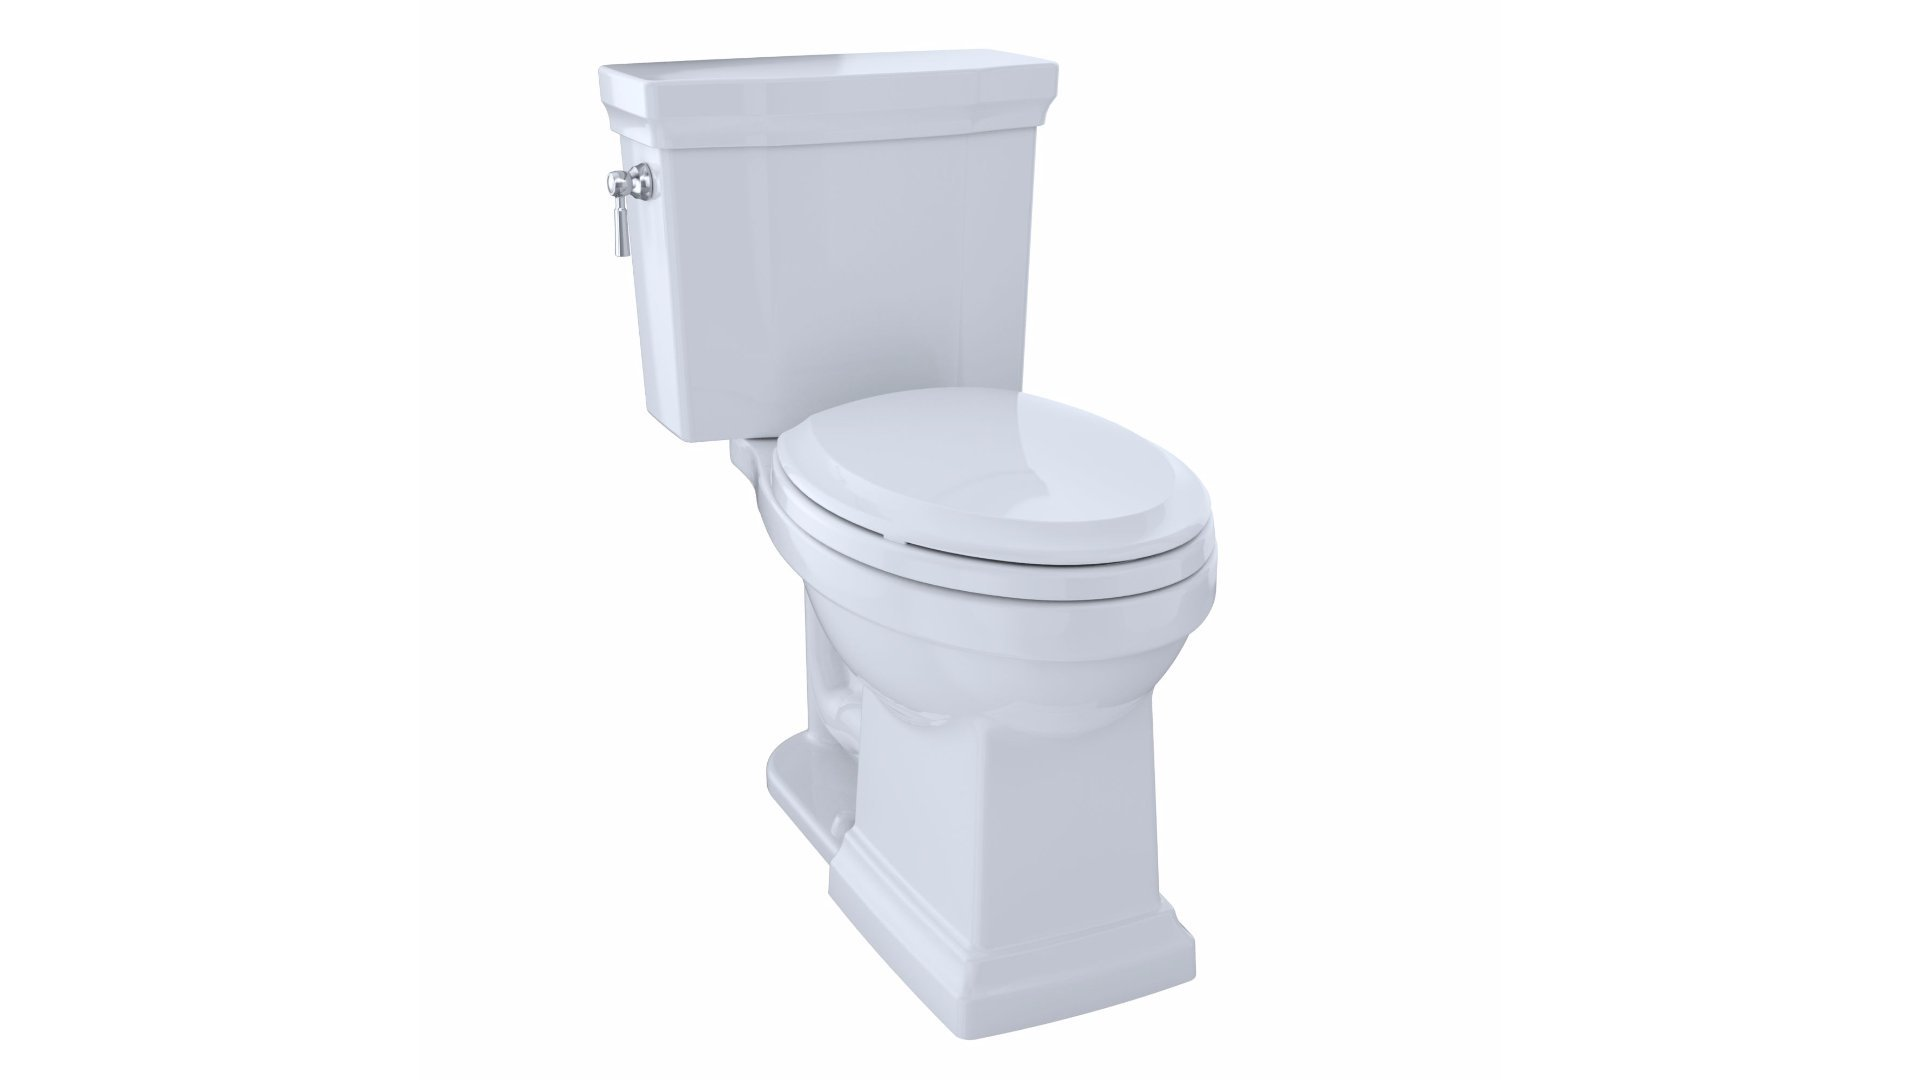 TOTO CST404CEFG#01 Promenade II Two-Piece Elongated 1.28 GPF Universal Height Toilet with CeFiONtect, Cotton by TOTO